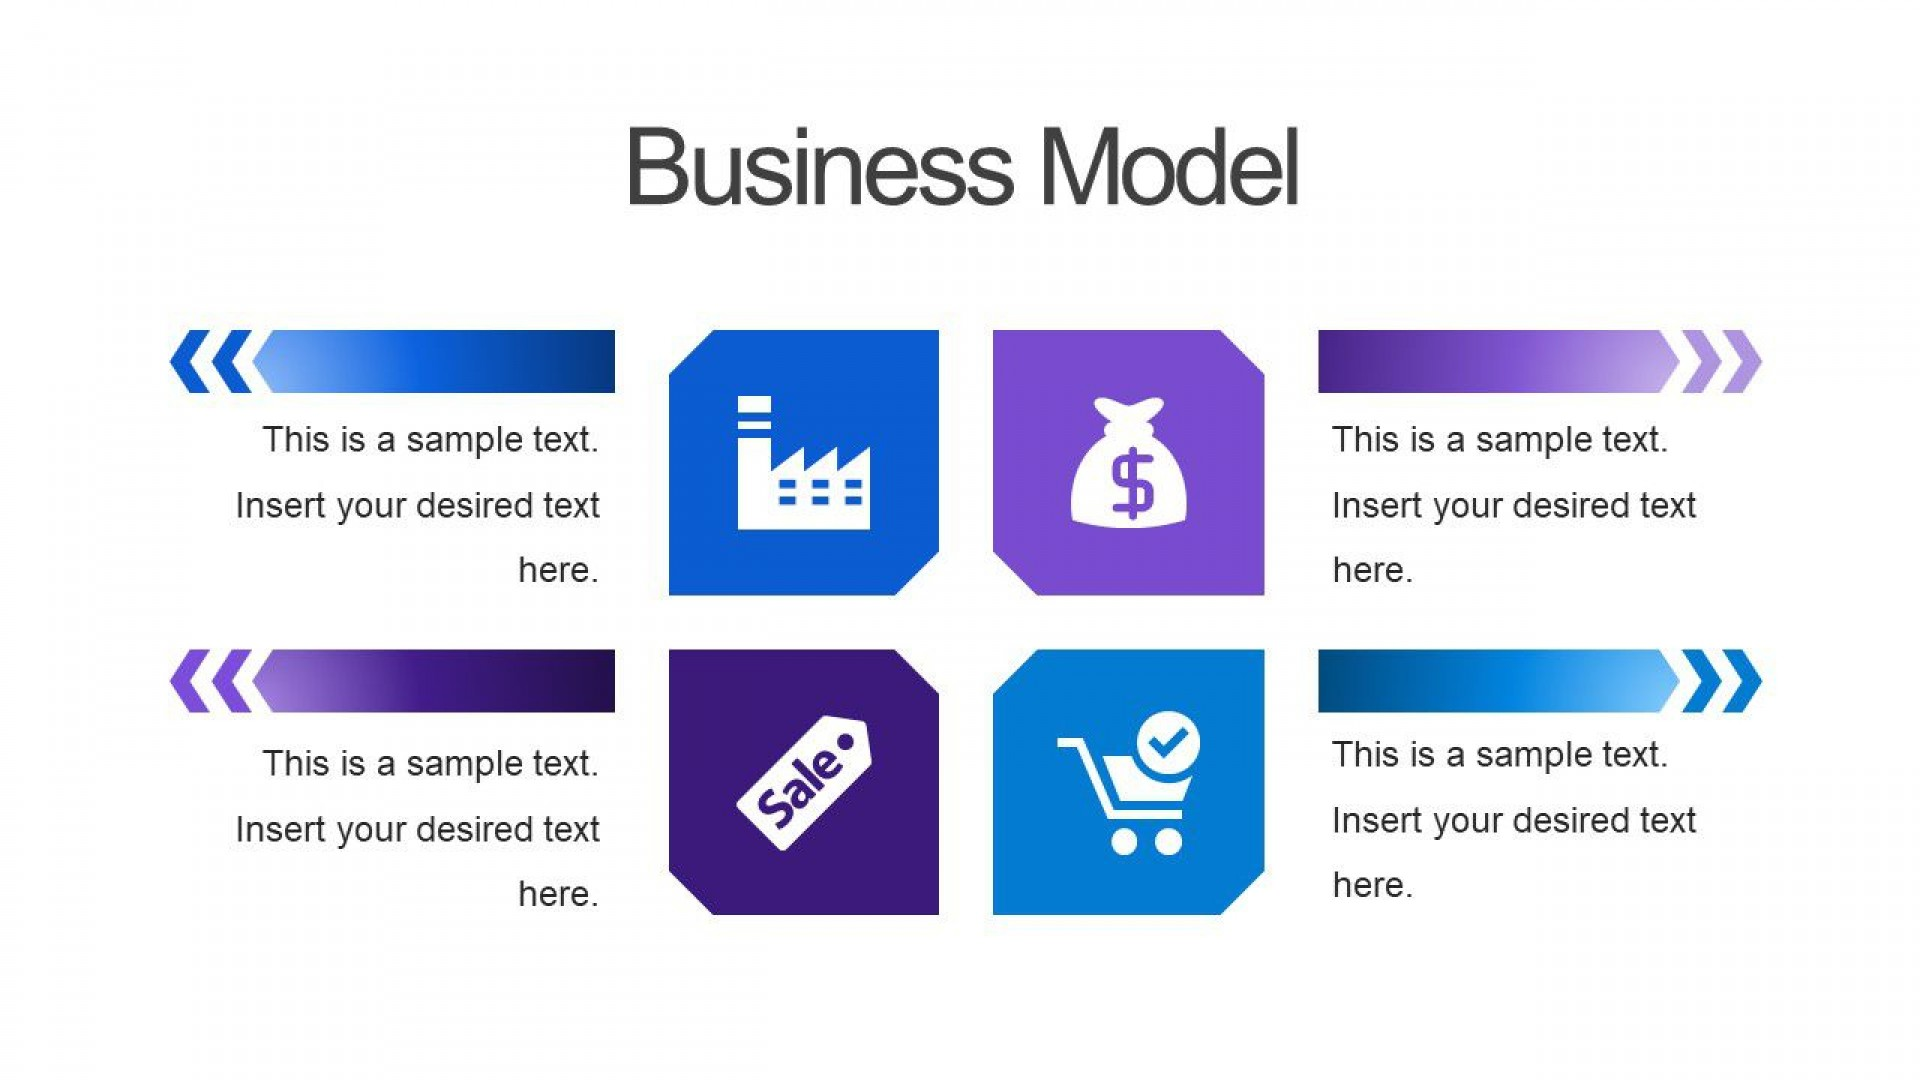 006 Surprising Free Busines Plan Template Ppt Concept  2020 Download Startup 30 60 901920